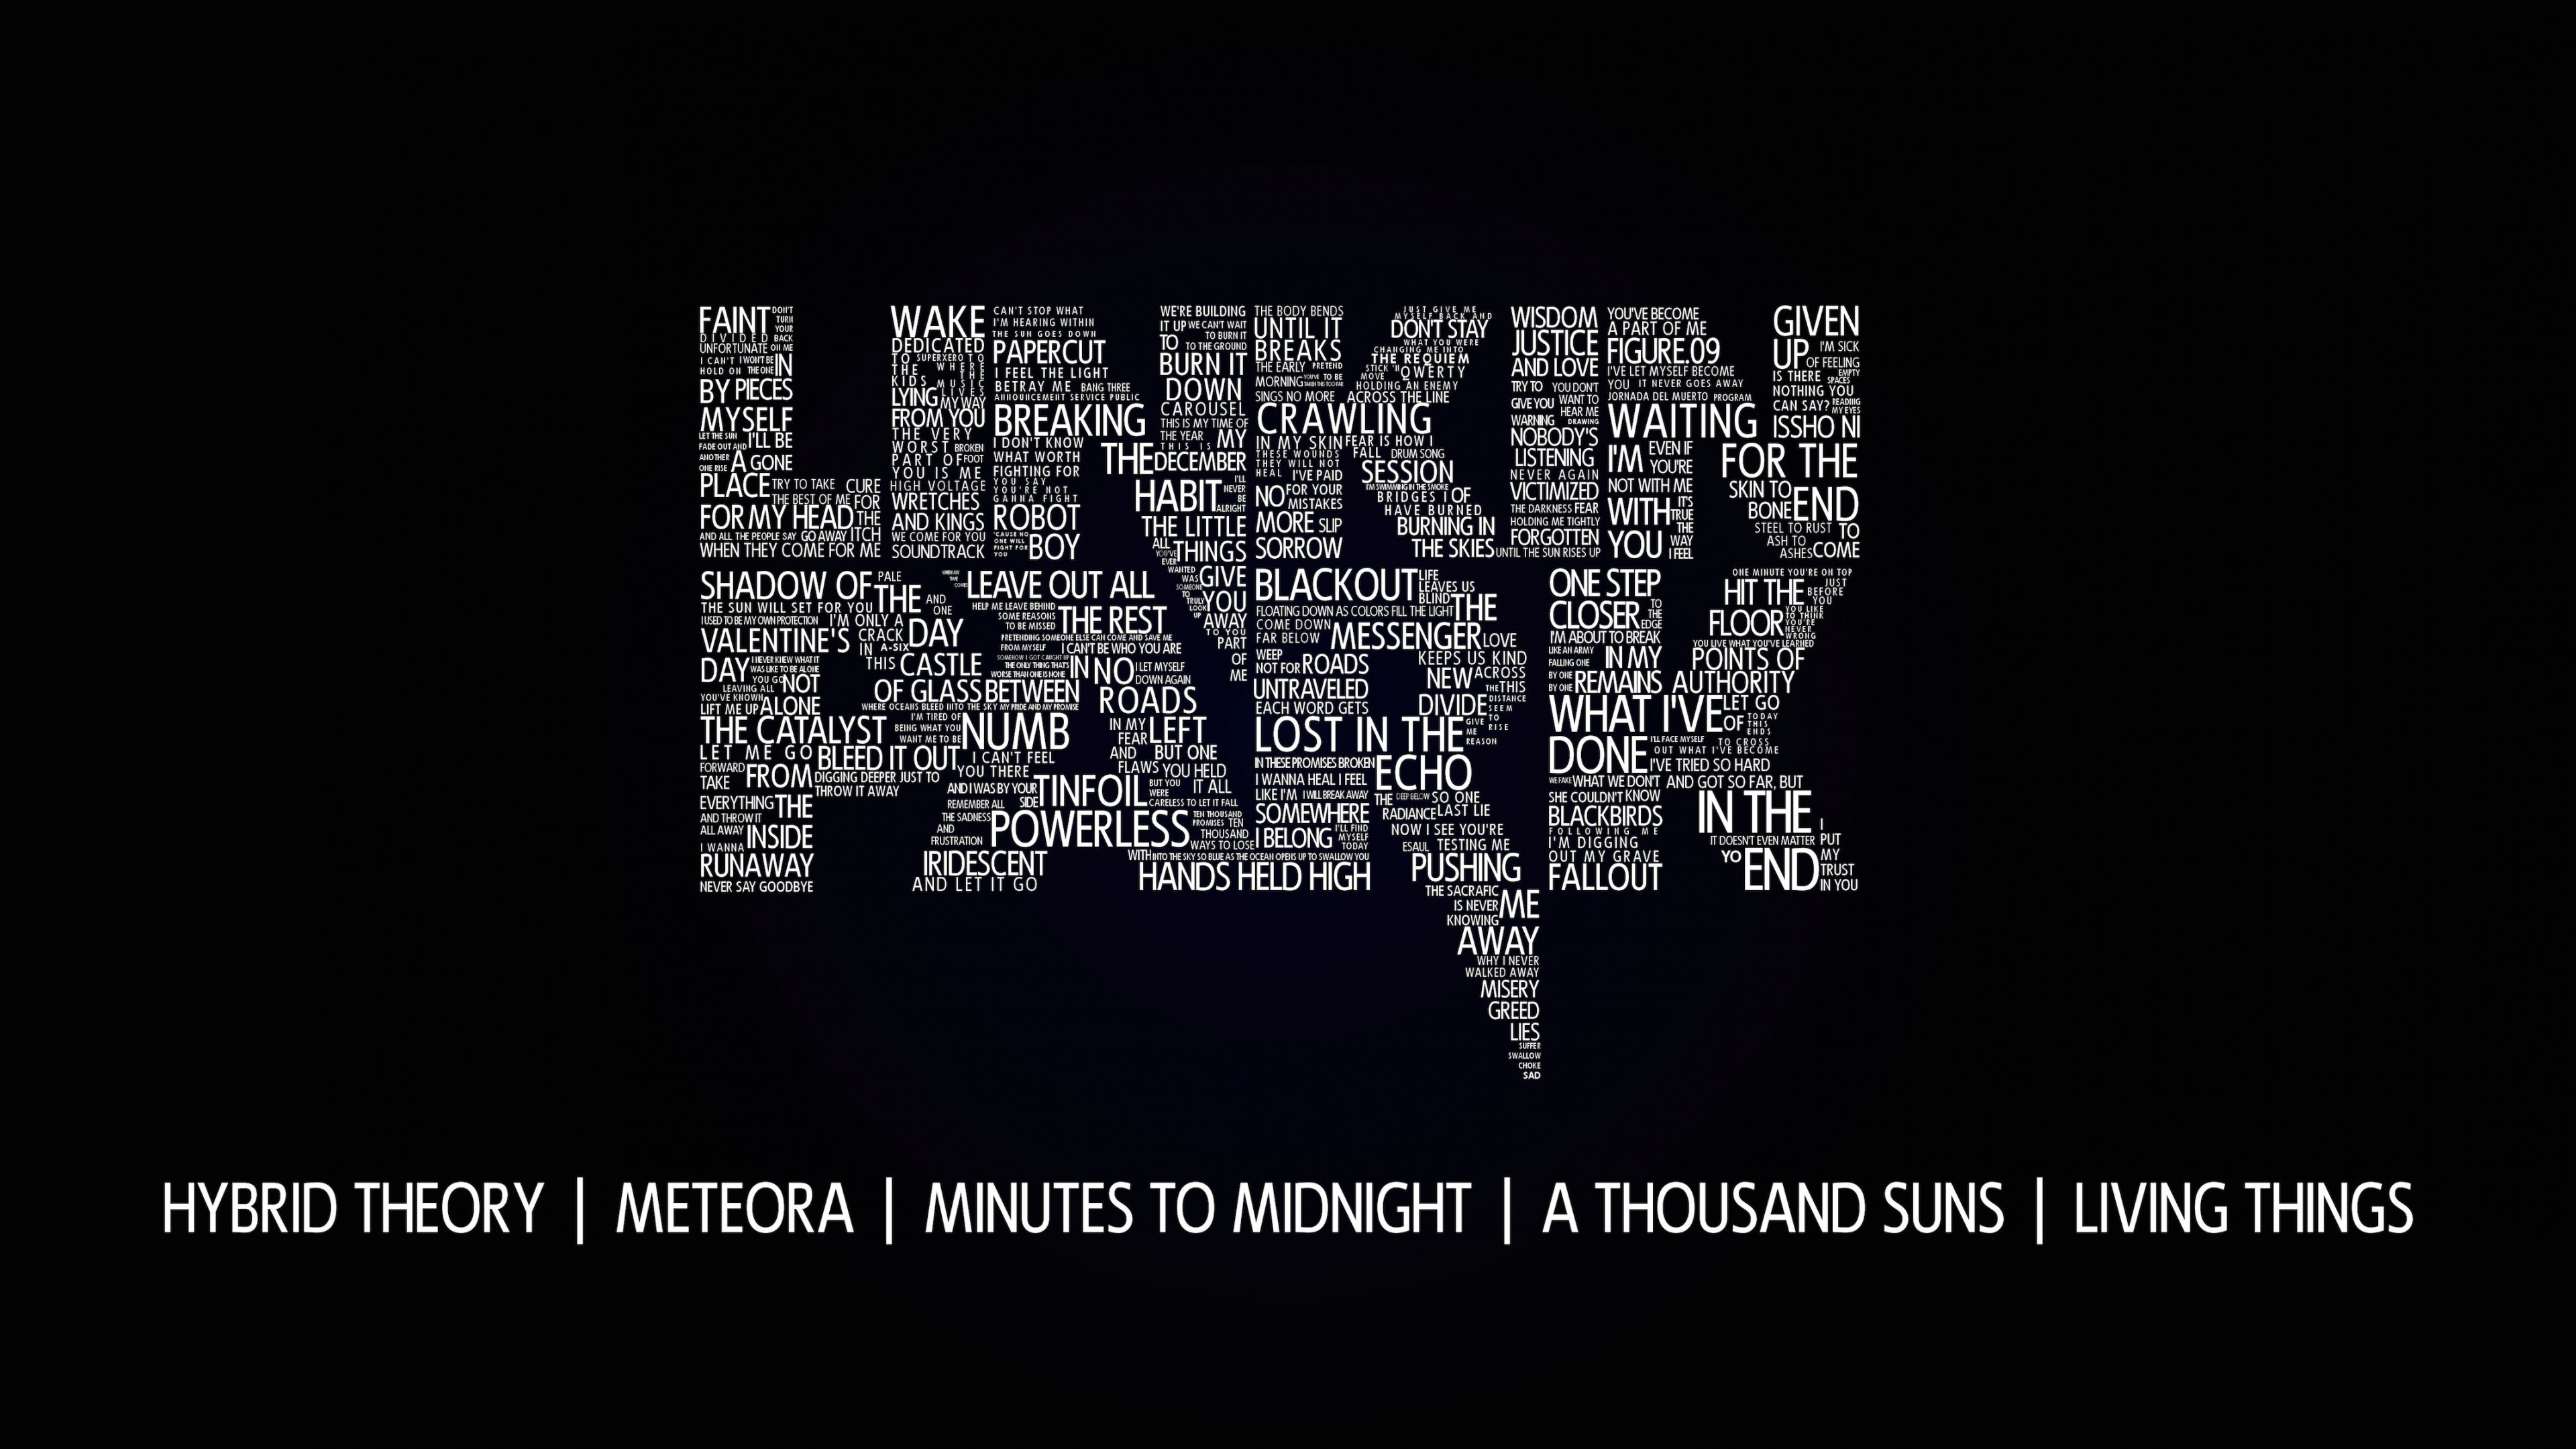 Linkin Park Typography Wallpaper for Desktop 4K 3840x2160